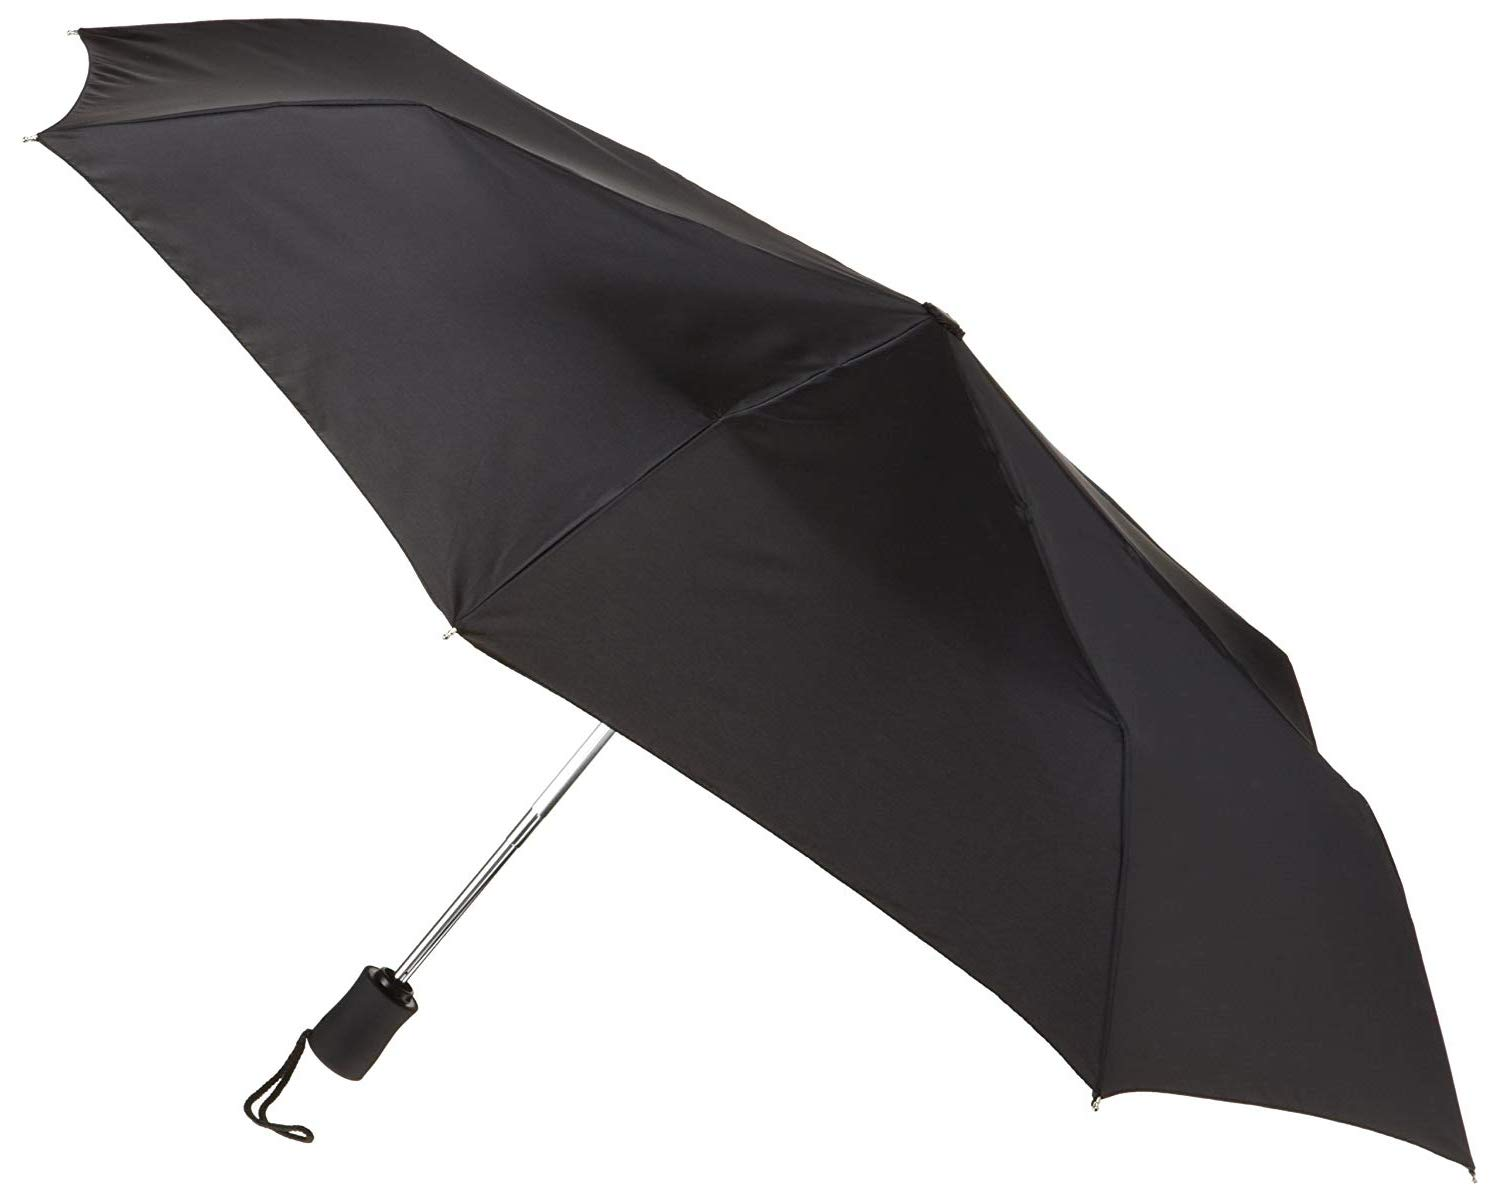 Lewis N. Clark Travel Umbrella: Windproof & Water Repellent with Mildew Resistant Fabric, Automatic Open Close & 1 Year Warranty. - Black by Lewis N. Clark (Image #2)